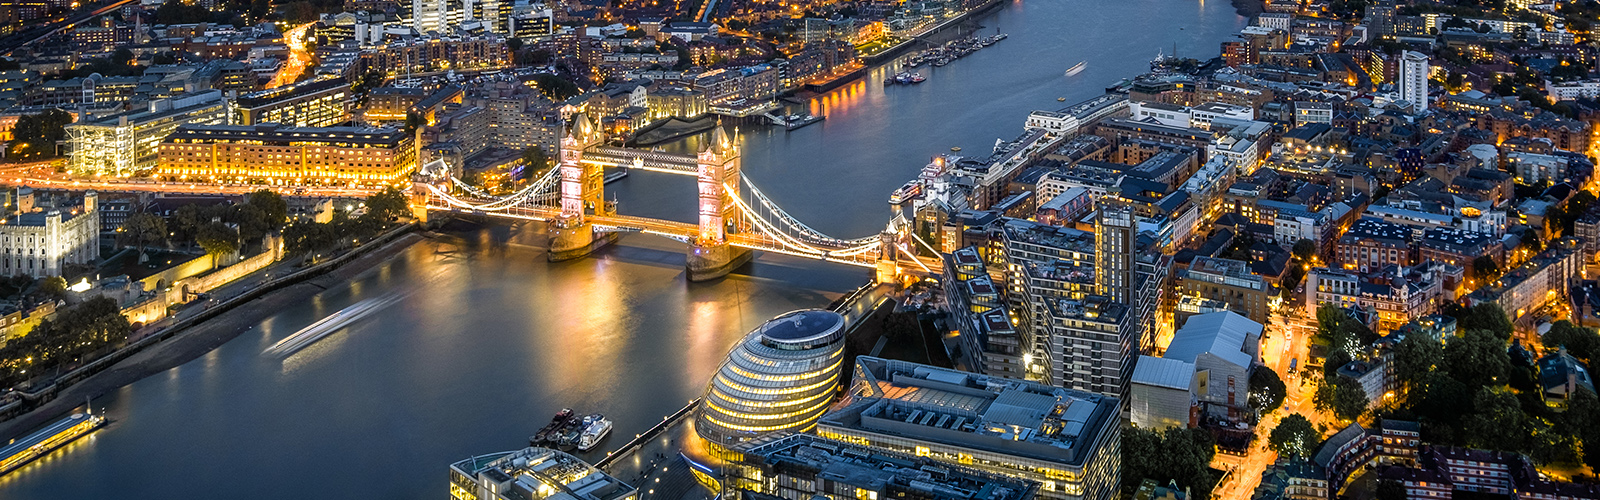 London landscape and night